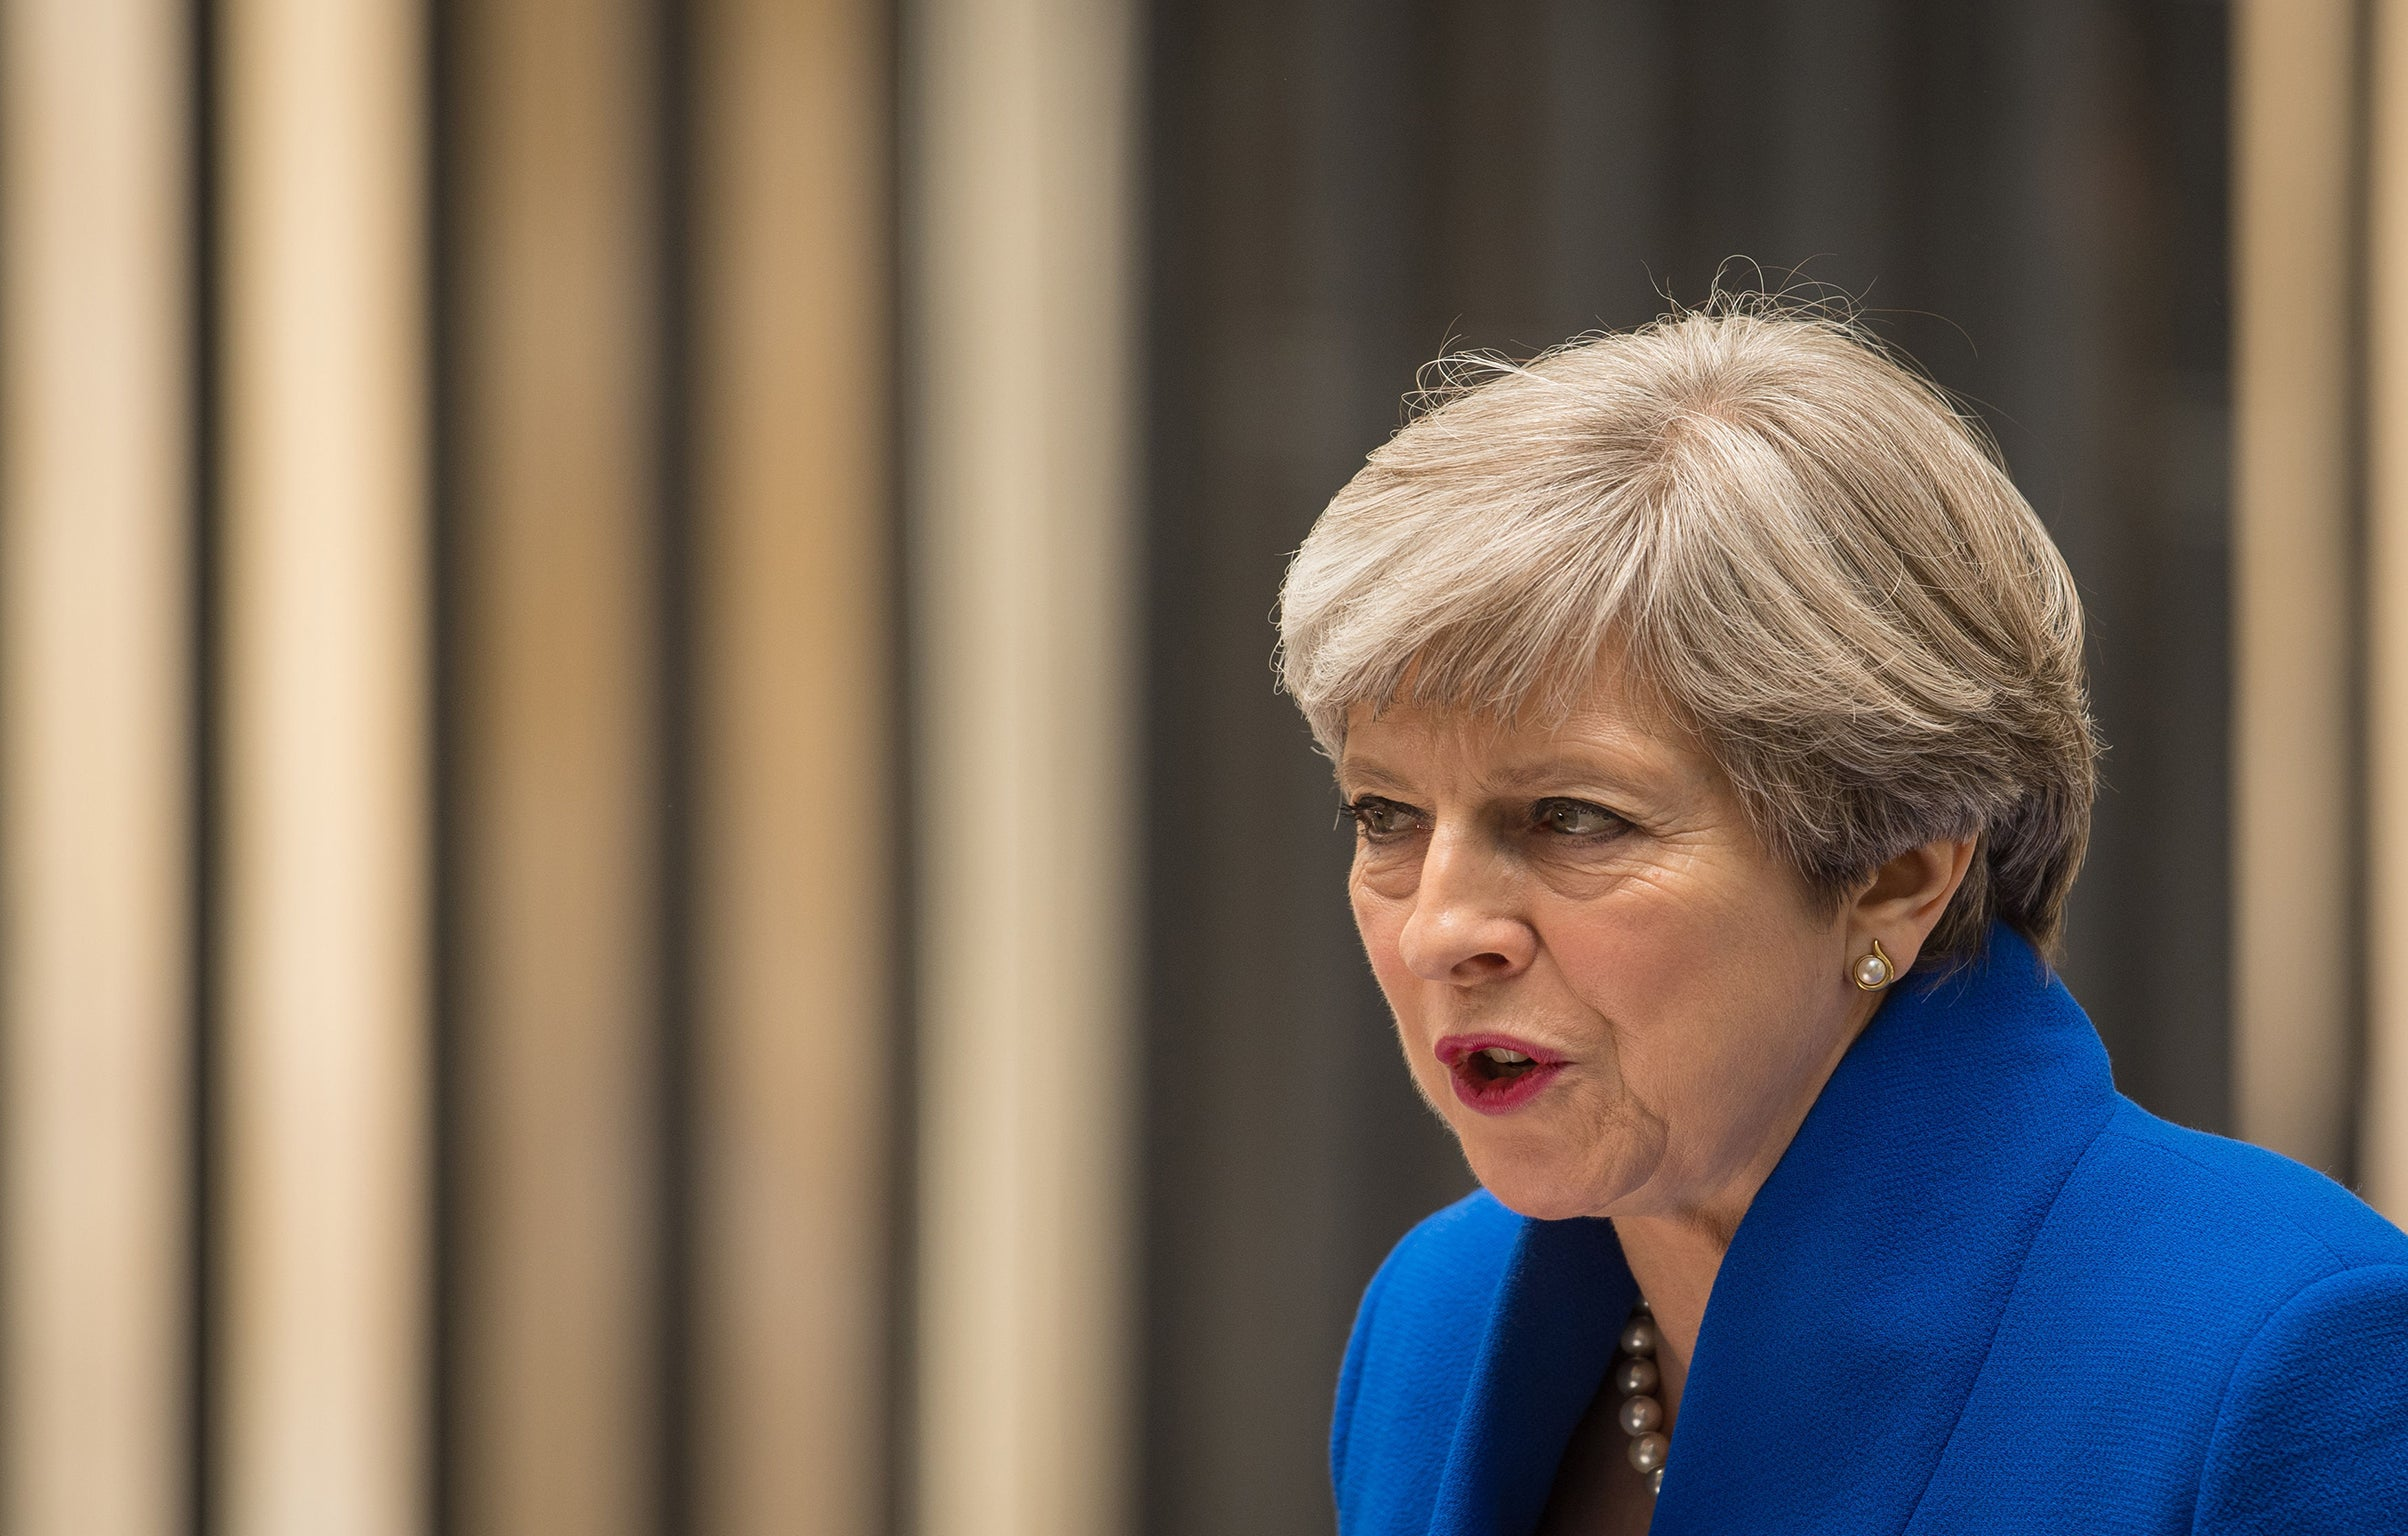 City analysts predict Theresa May will only last a few more months as PM